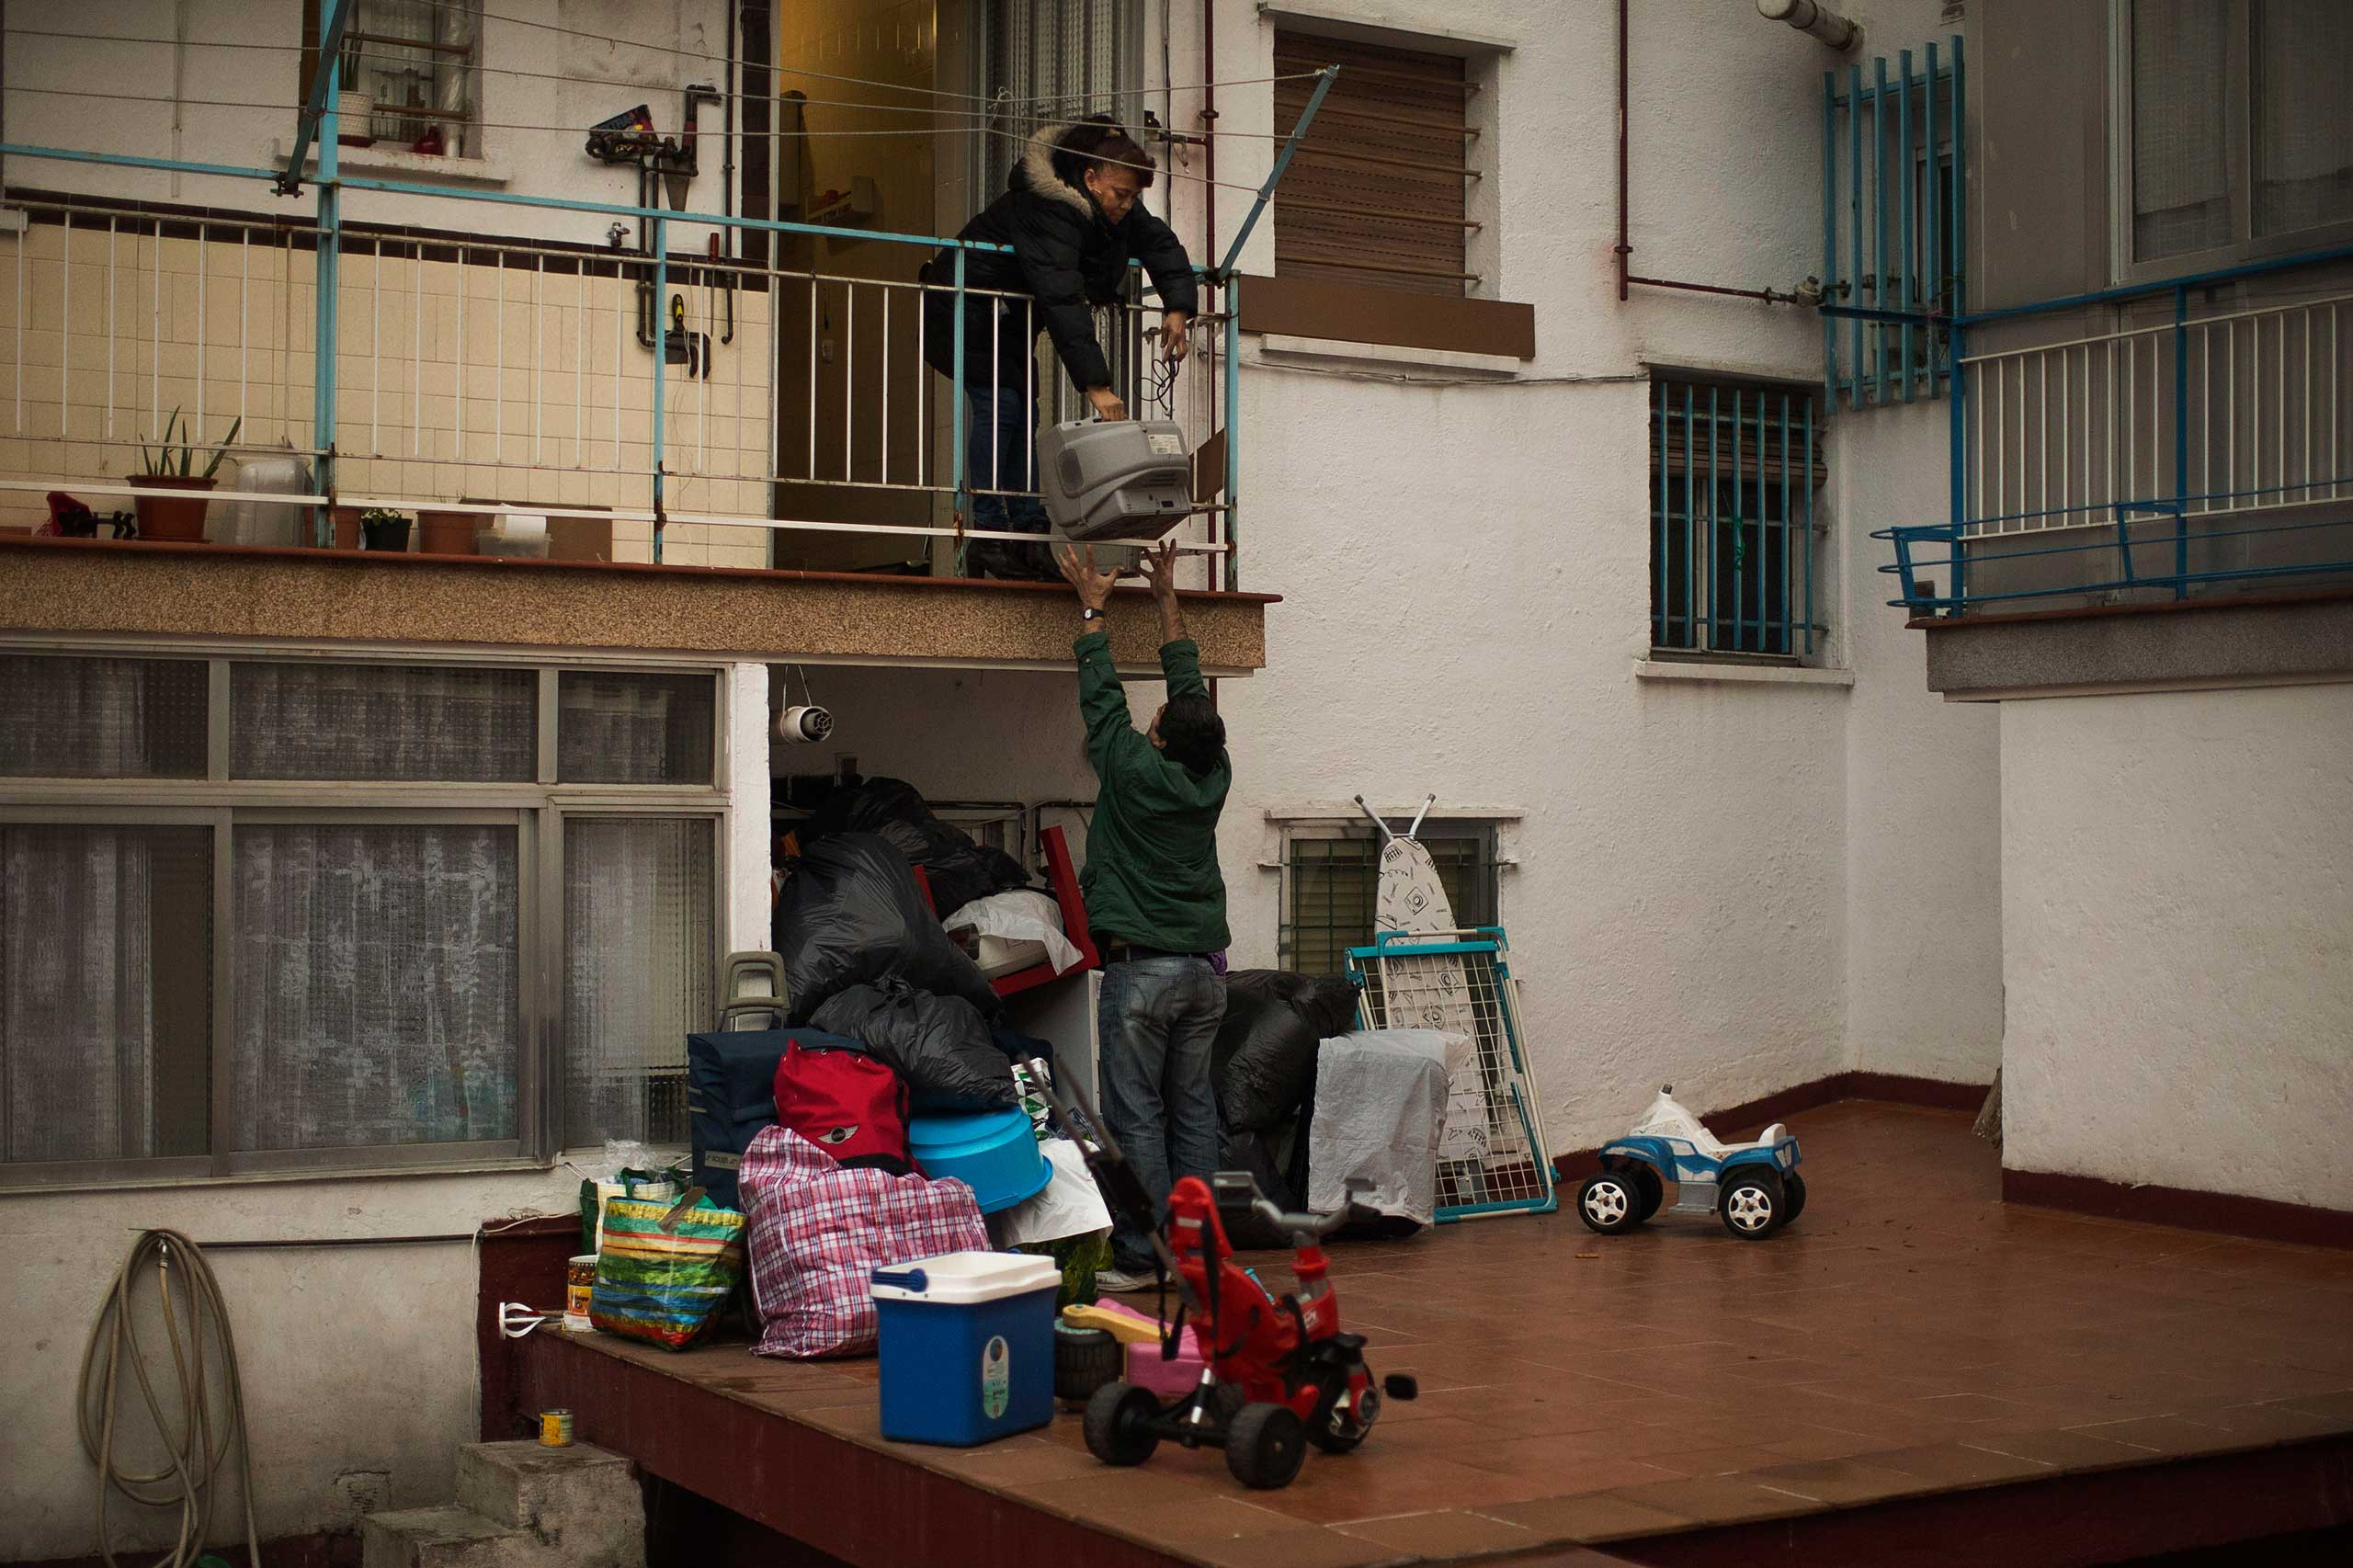 Mercedes Pincay, 50, empties her apartment through the back door during her eviction in Madrid. Dec. 2014.